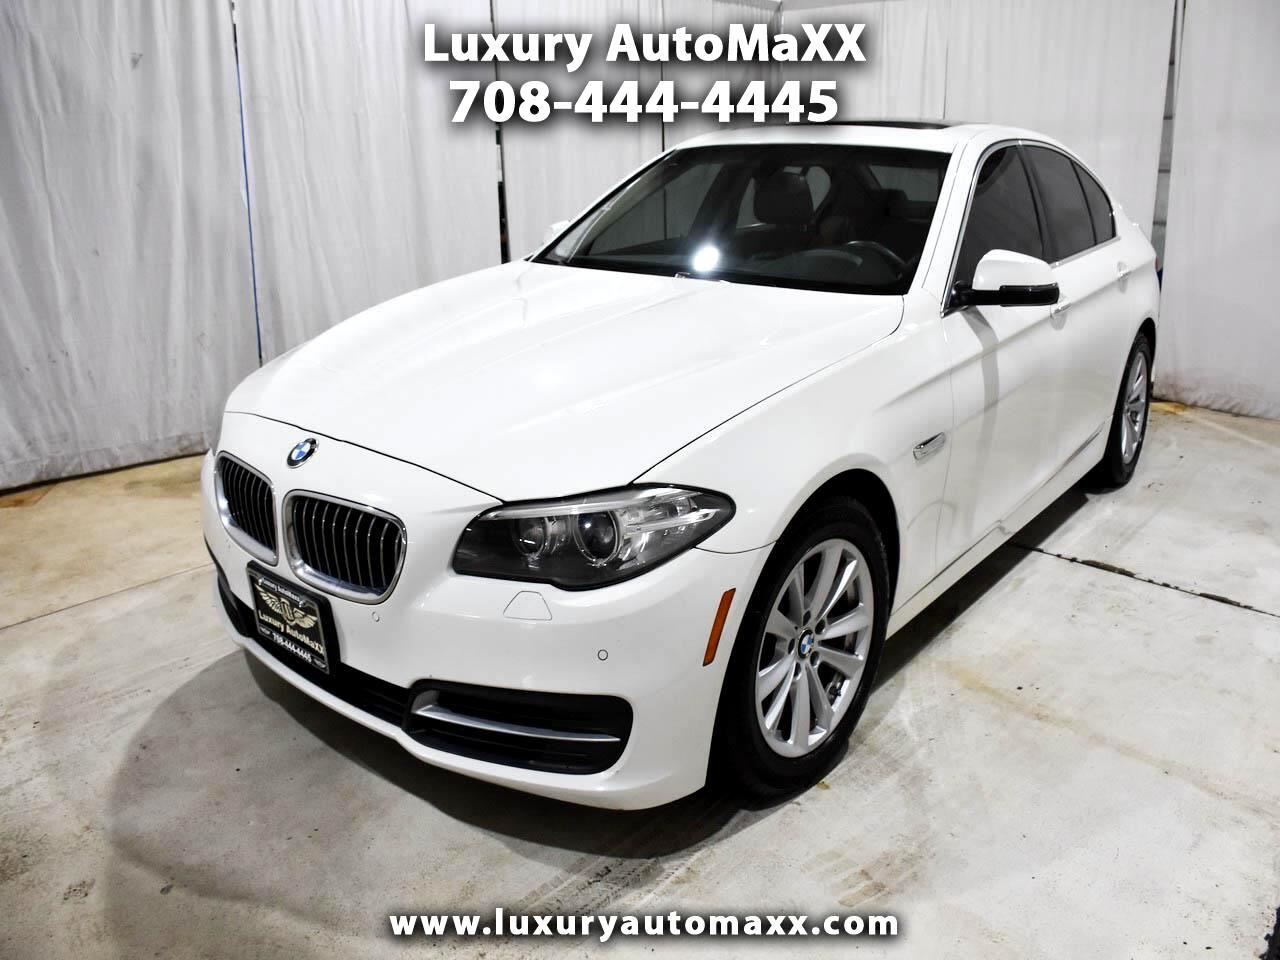 2014 BMW 5-Series 528i xDrive COLD WEATHER NAVIGATION KEYLESS ENTRY